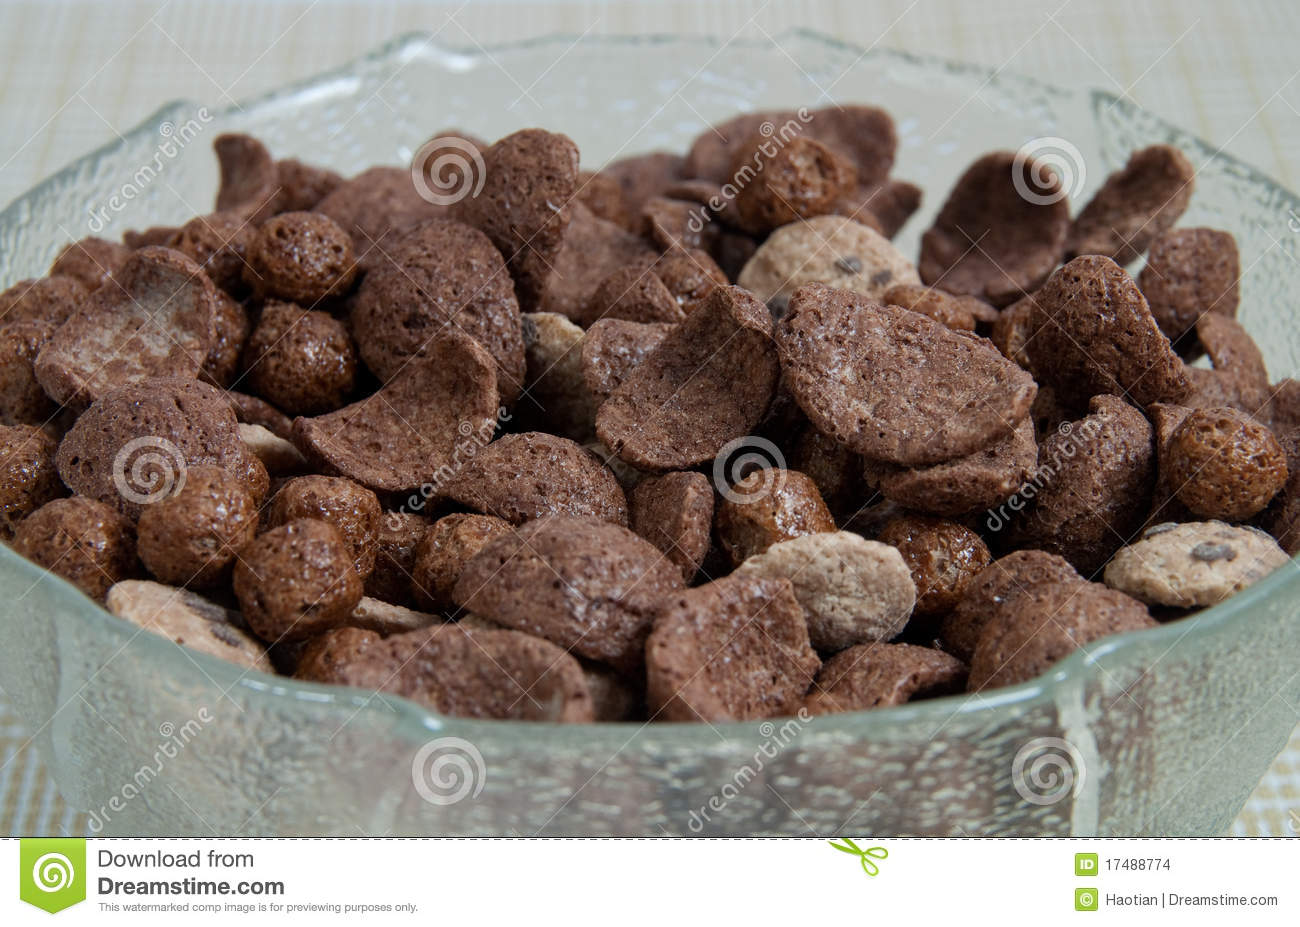 Chocolate Cereal Stock Images - Image: 17488774